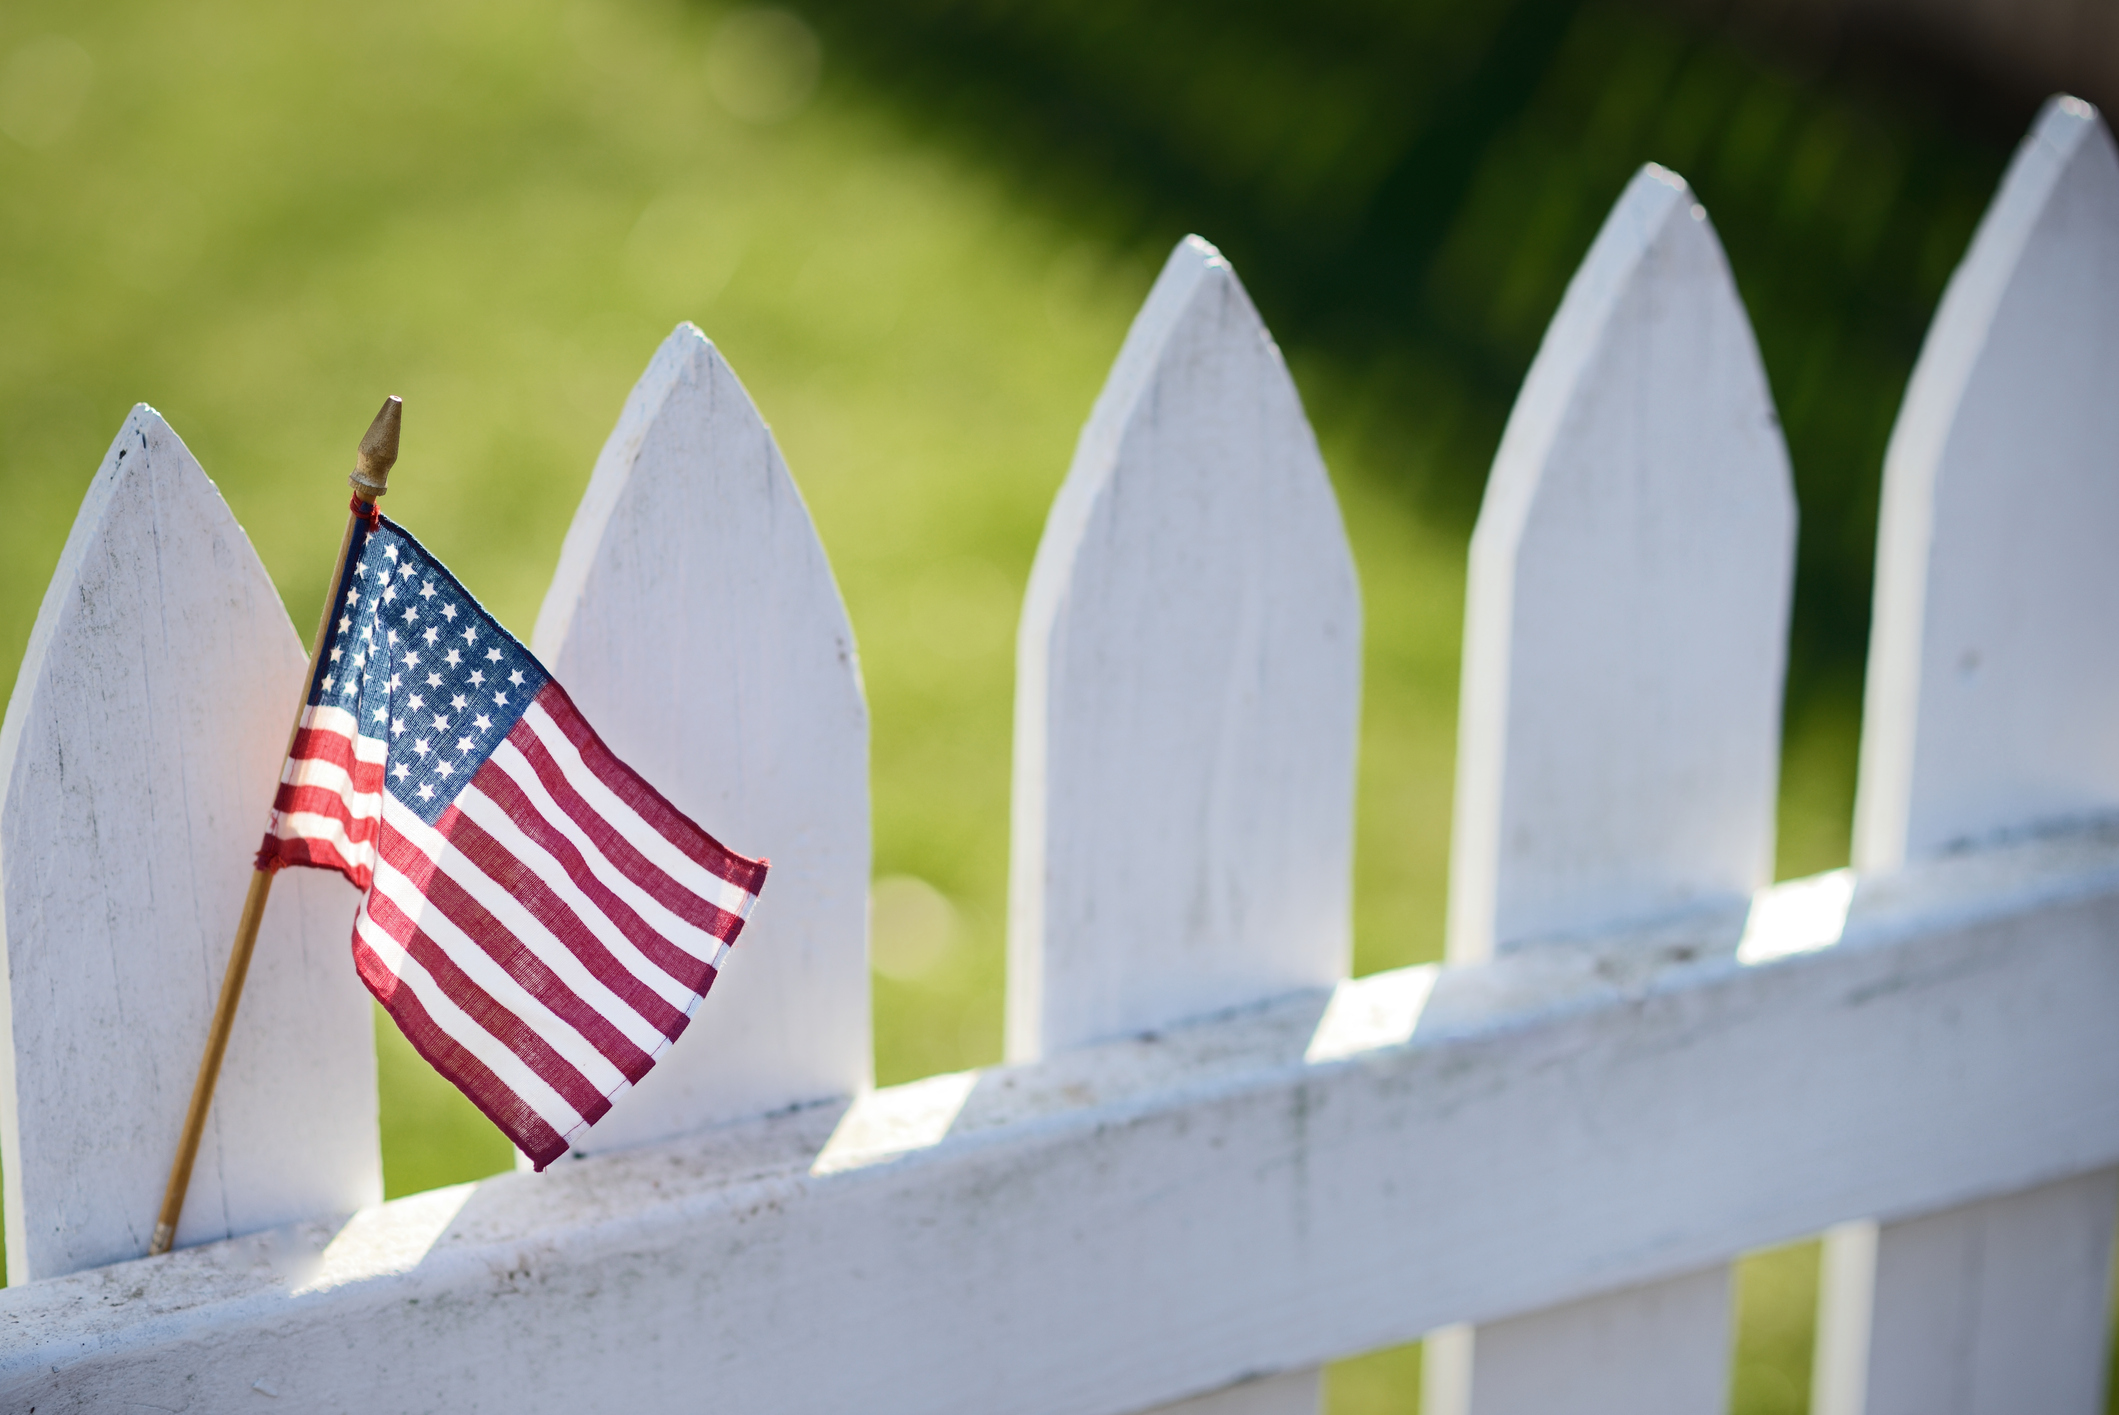 American Flag on white picket fence for Memorial Day or Labor Day.